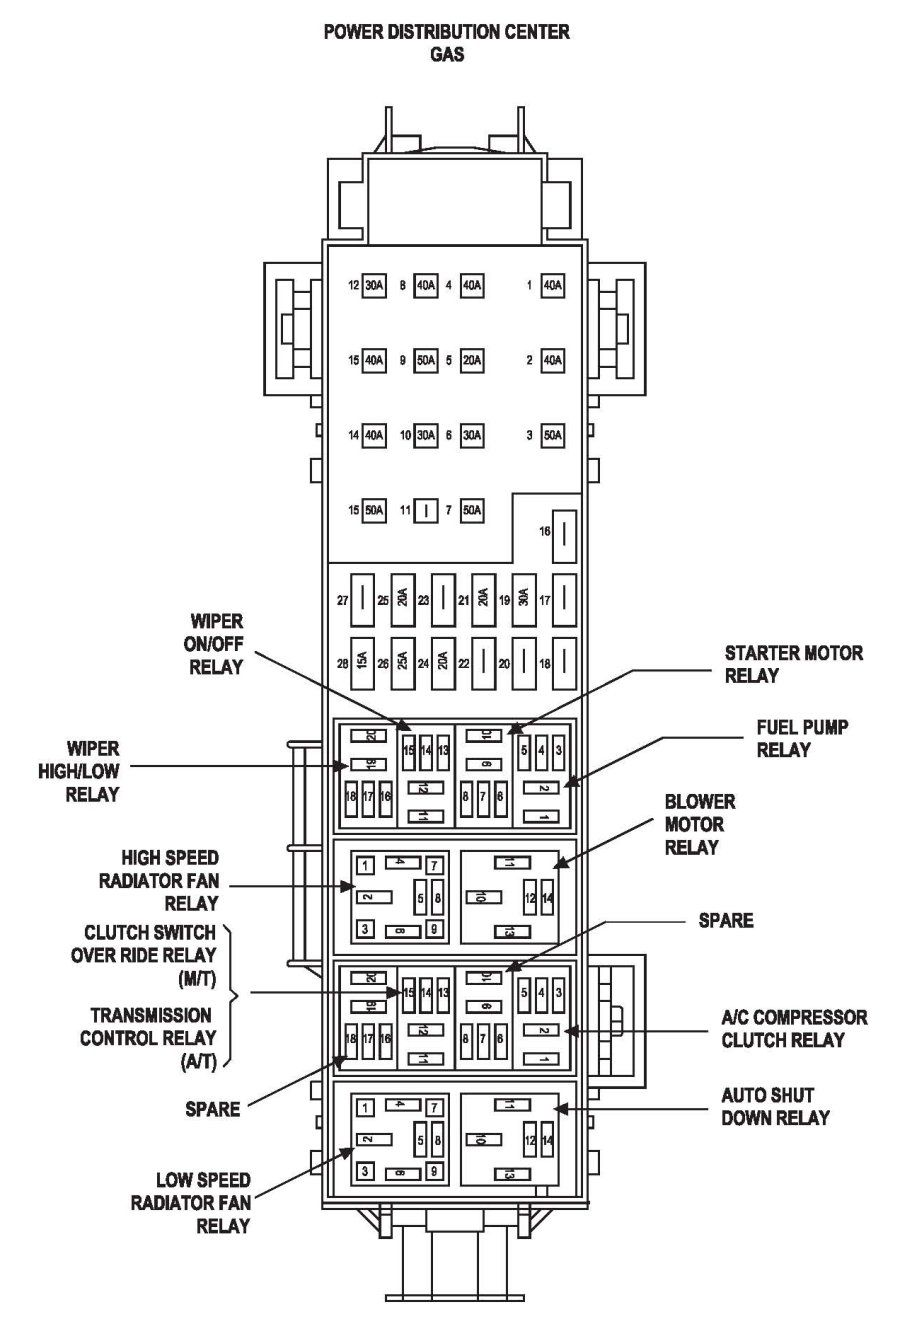 b3536c3739783eb19f827744cc42c3c4 jeep liberty fuse box diagram image details jeep liberty 2002 jeep wrangler fuse box at soozxer.org